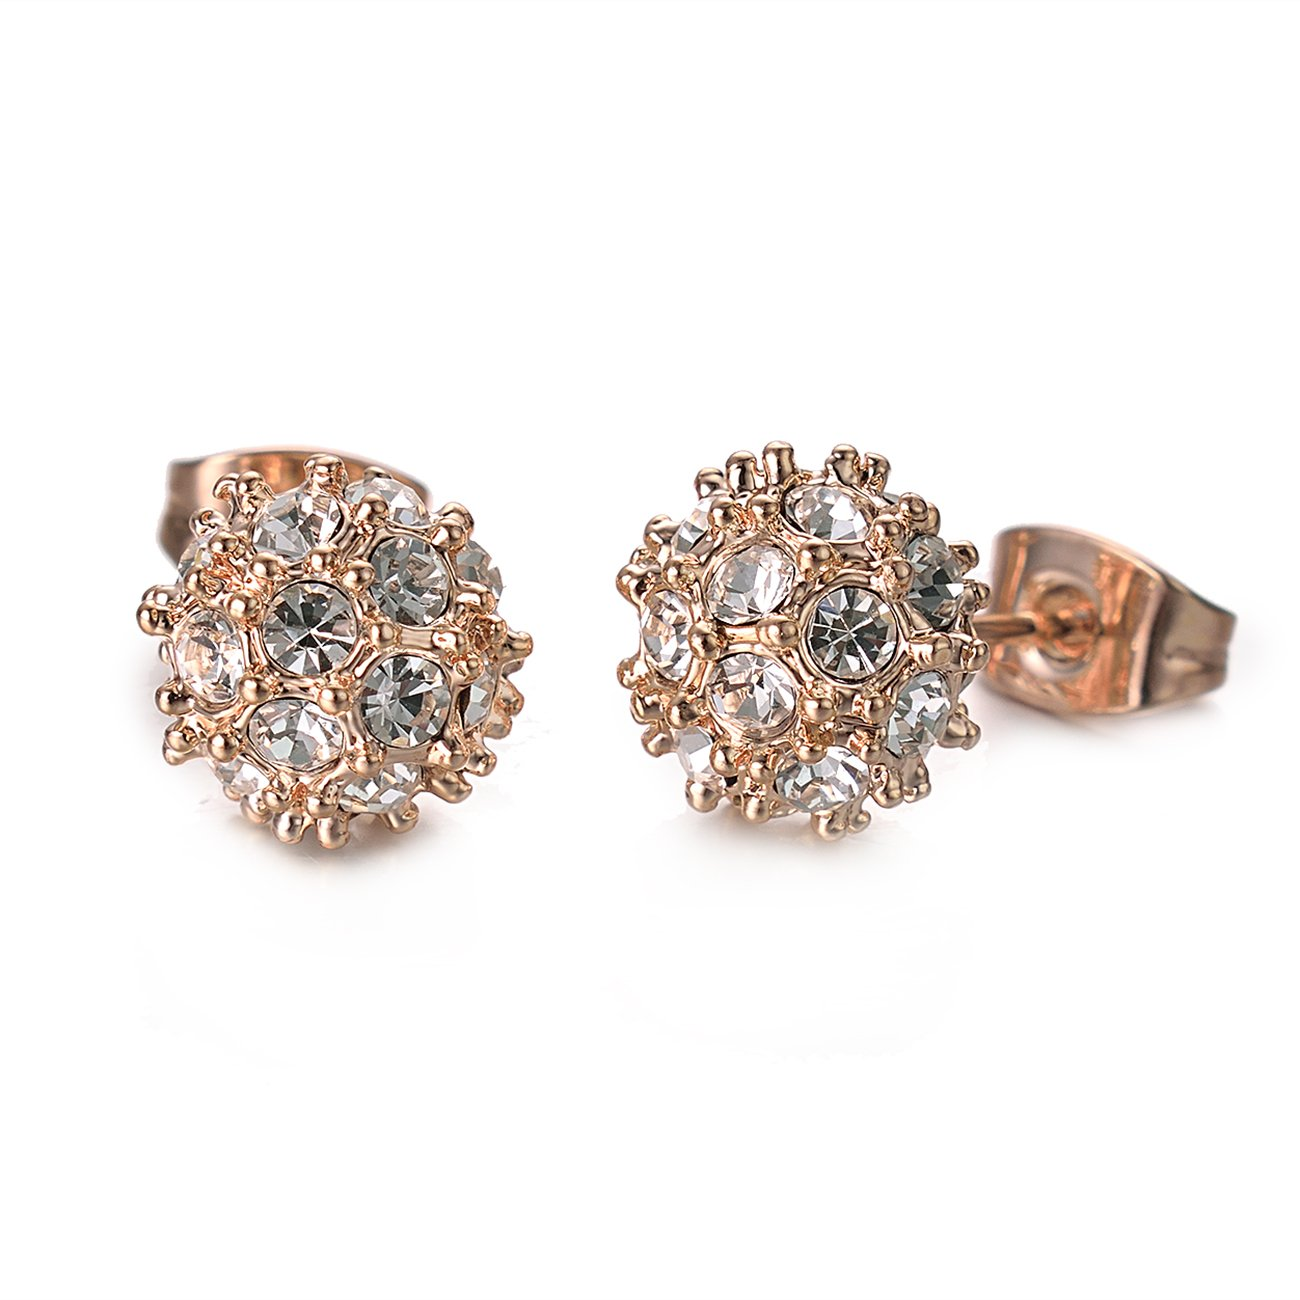 VOGEM Ball Stud Earrings Rose Gold Plated Bling Cubic Zirconia Party Cocktail Jewellery For Girls Women TCE1040